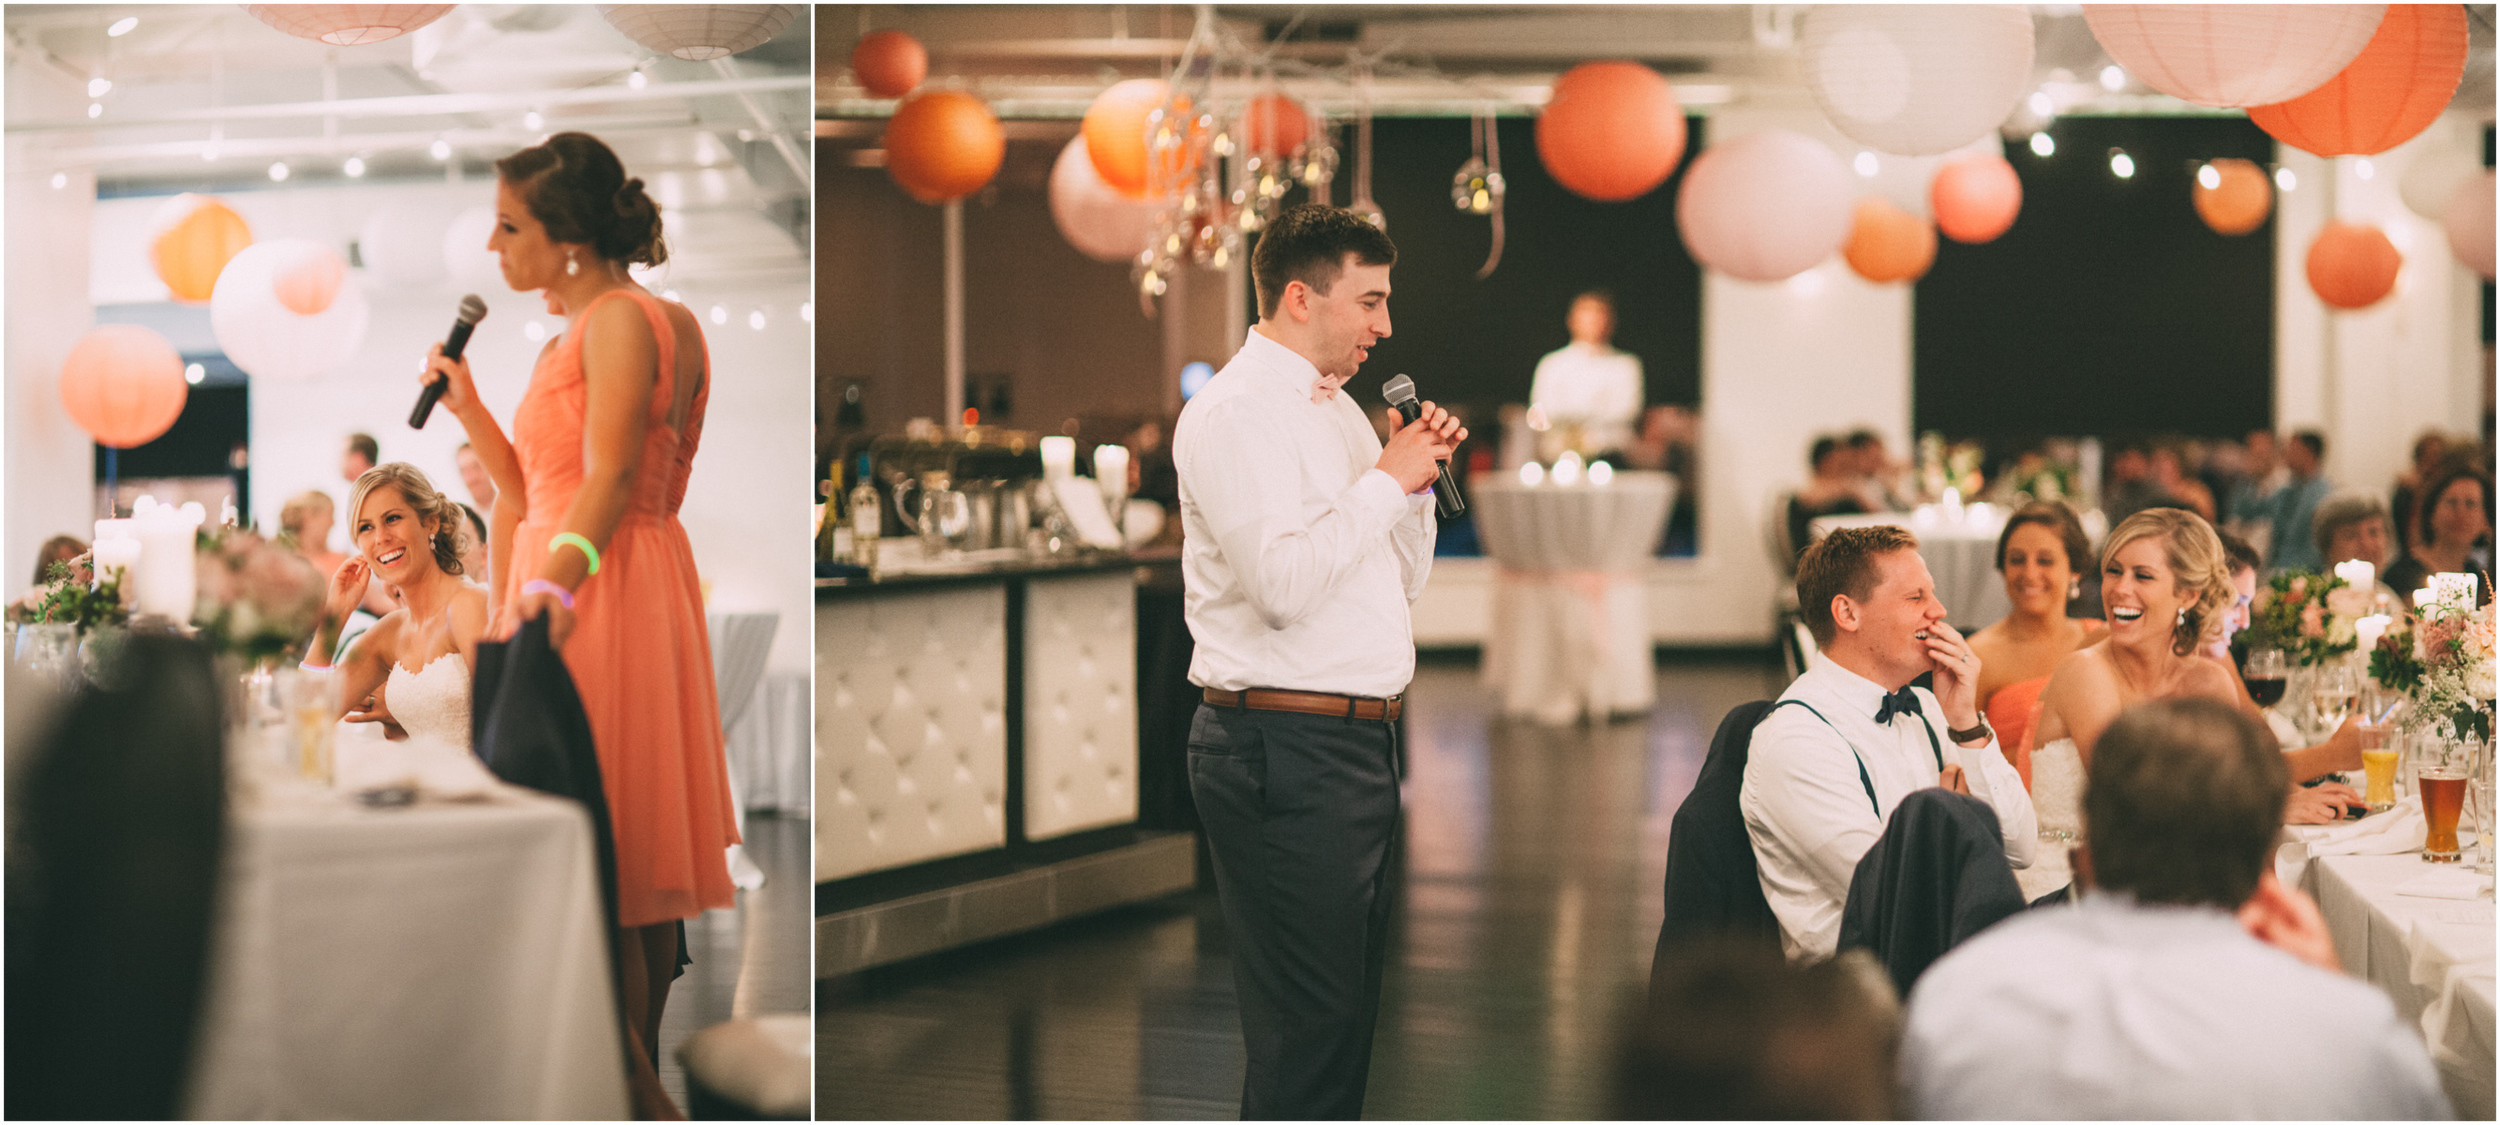 Best man and maid of honor toast the bride and groom at their wedding reception in Kansas City